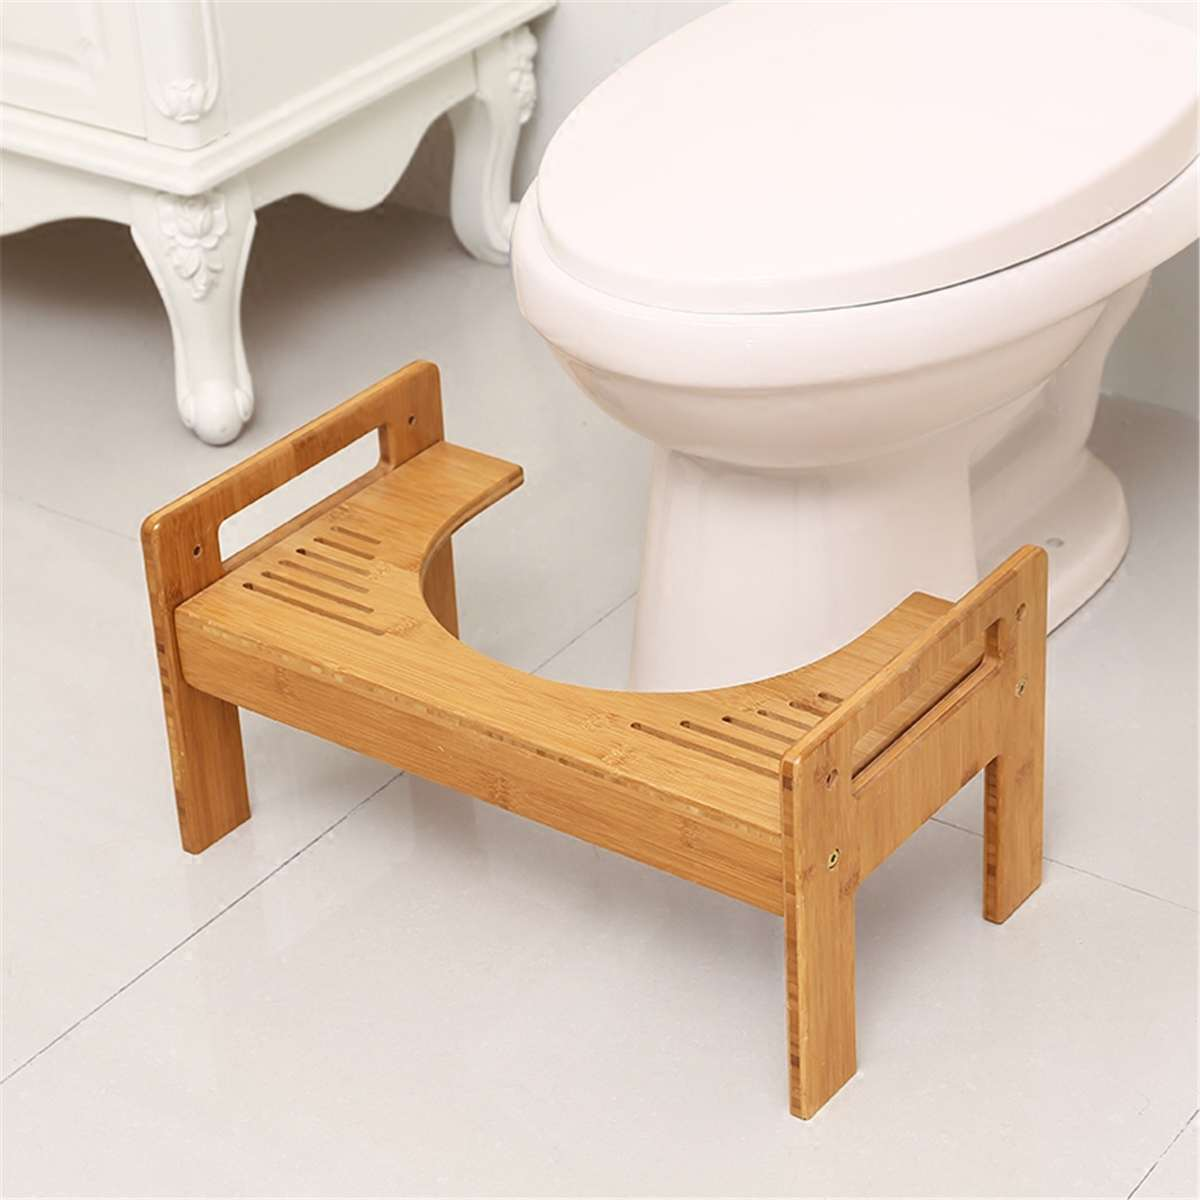 Bamboo Squat Toilet Potty Step Foot Stool Bathroom Non Slip Prevent Constipation